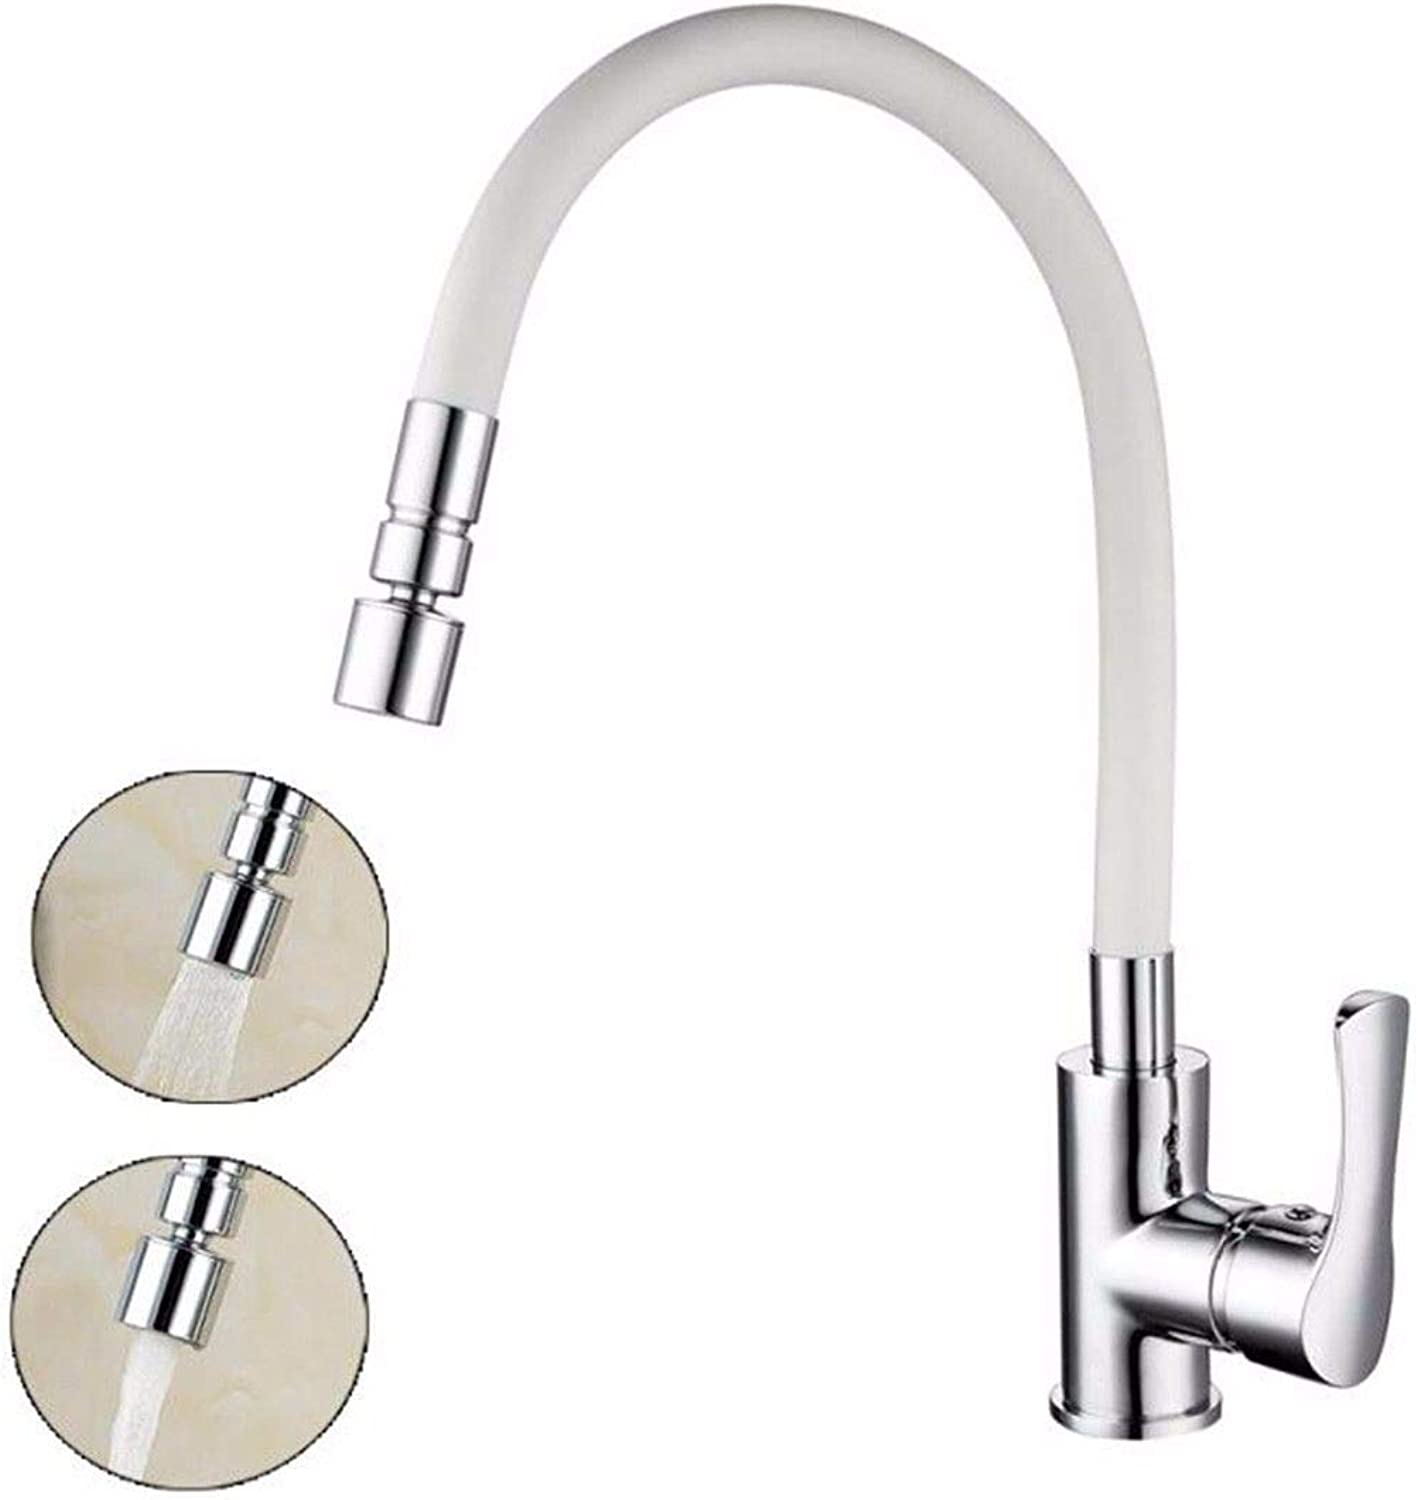 MulFaucet redating hot and Cold Kitchen Faucet Sink dishwashing Sink Faucet Kitchen Double Outlet Faucet D